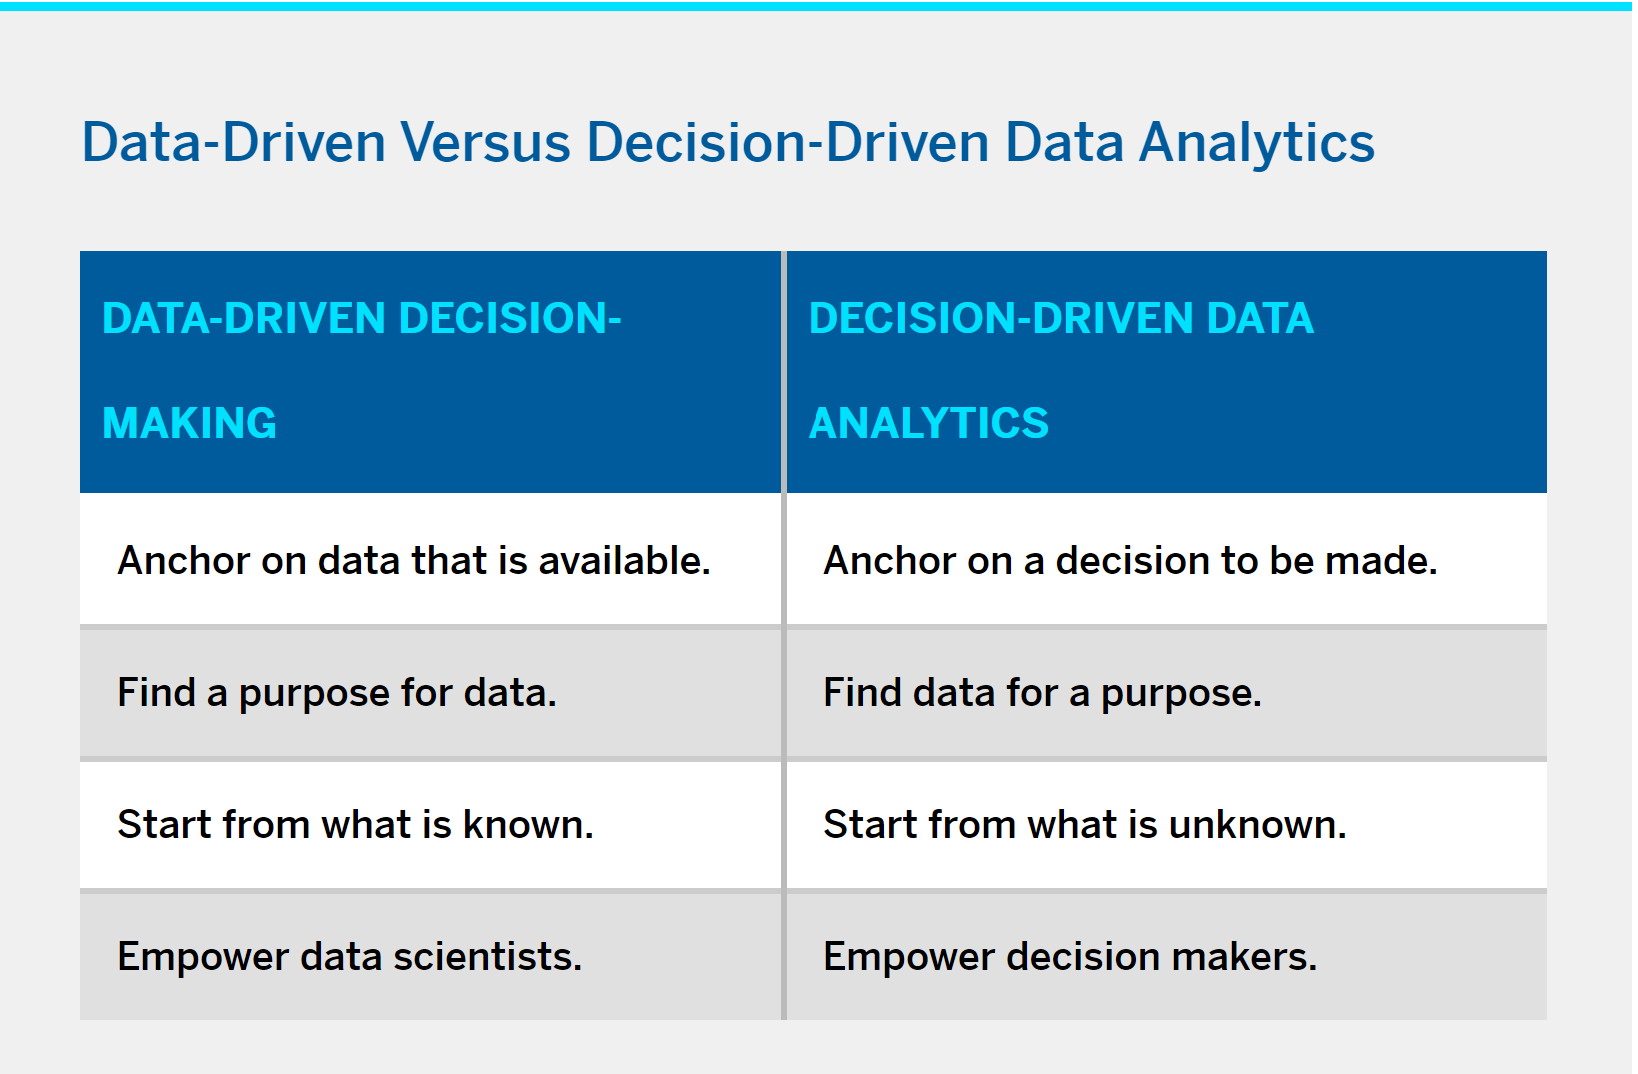 Leading With Decision-Driven Data Analytics